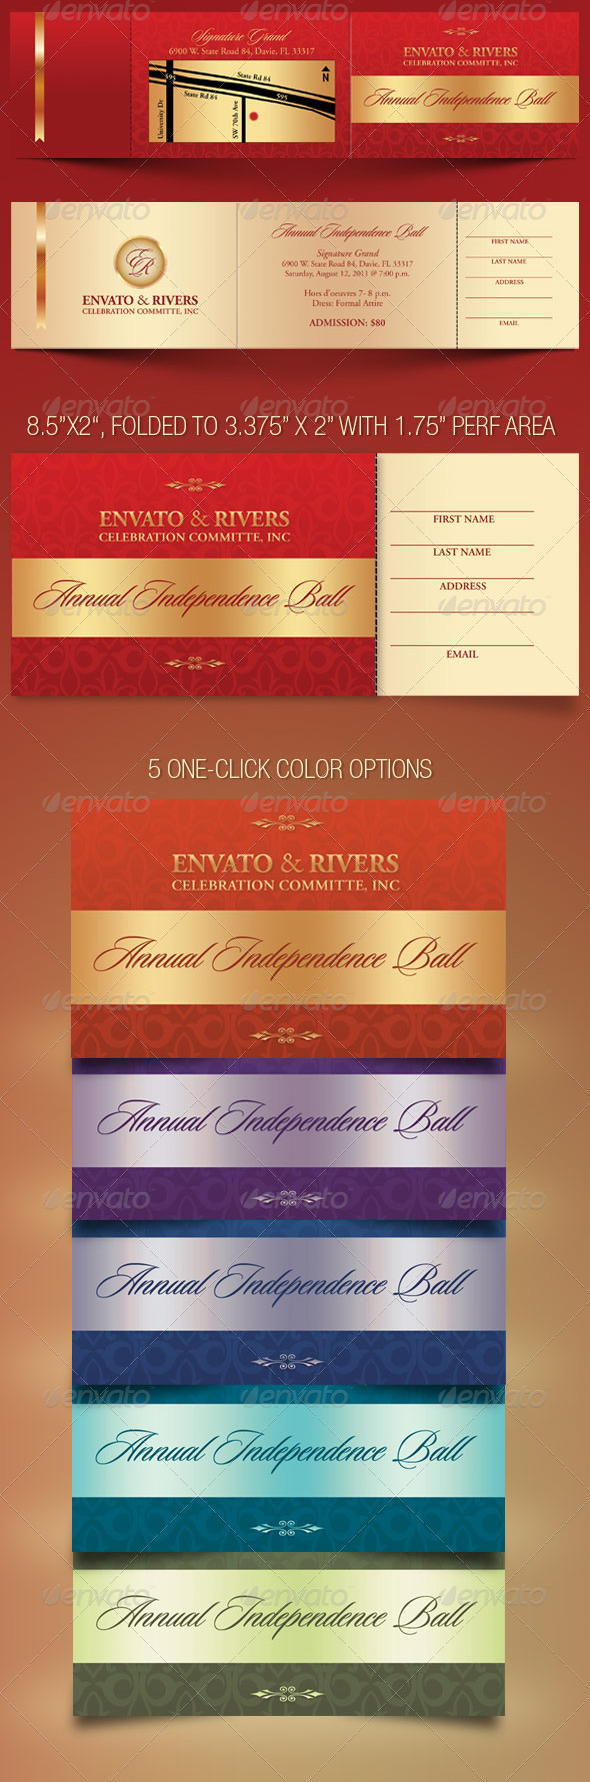 Folded Banquet Ticket Template on Behance – Banquet Ticket Template